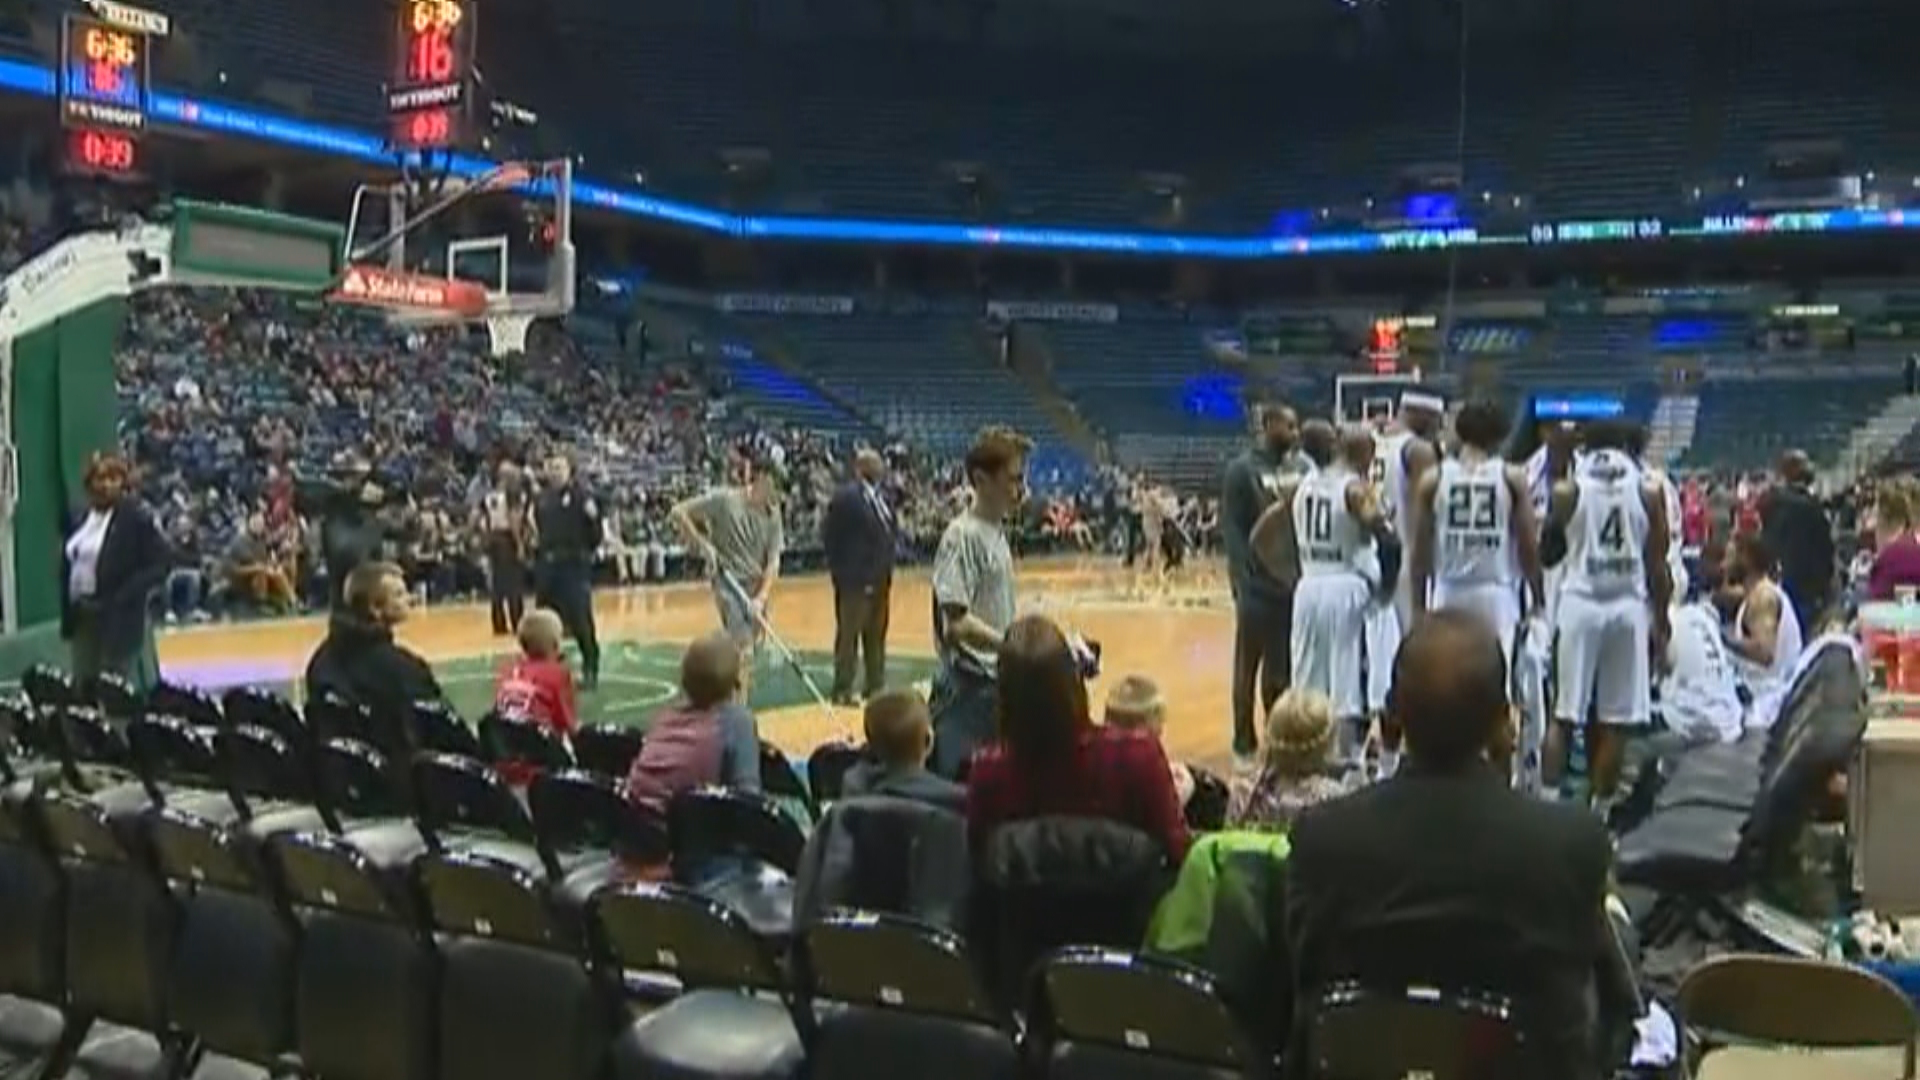 Wisconsin Herd fans traveled to Milwaukee to see the team's first game, November 17, 2017. (WLUK)<p></p>